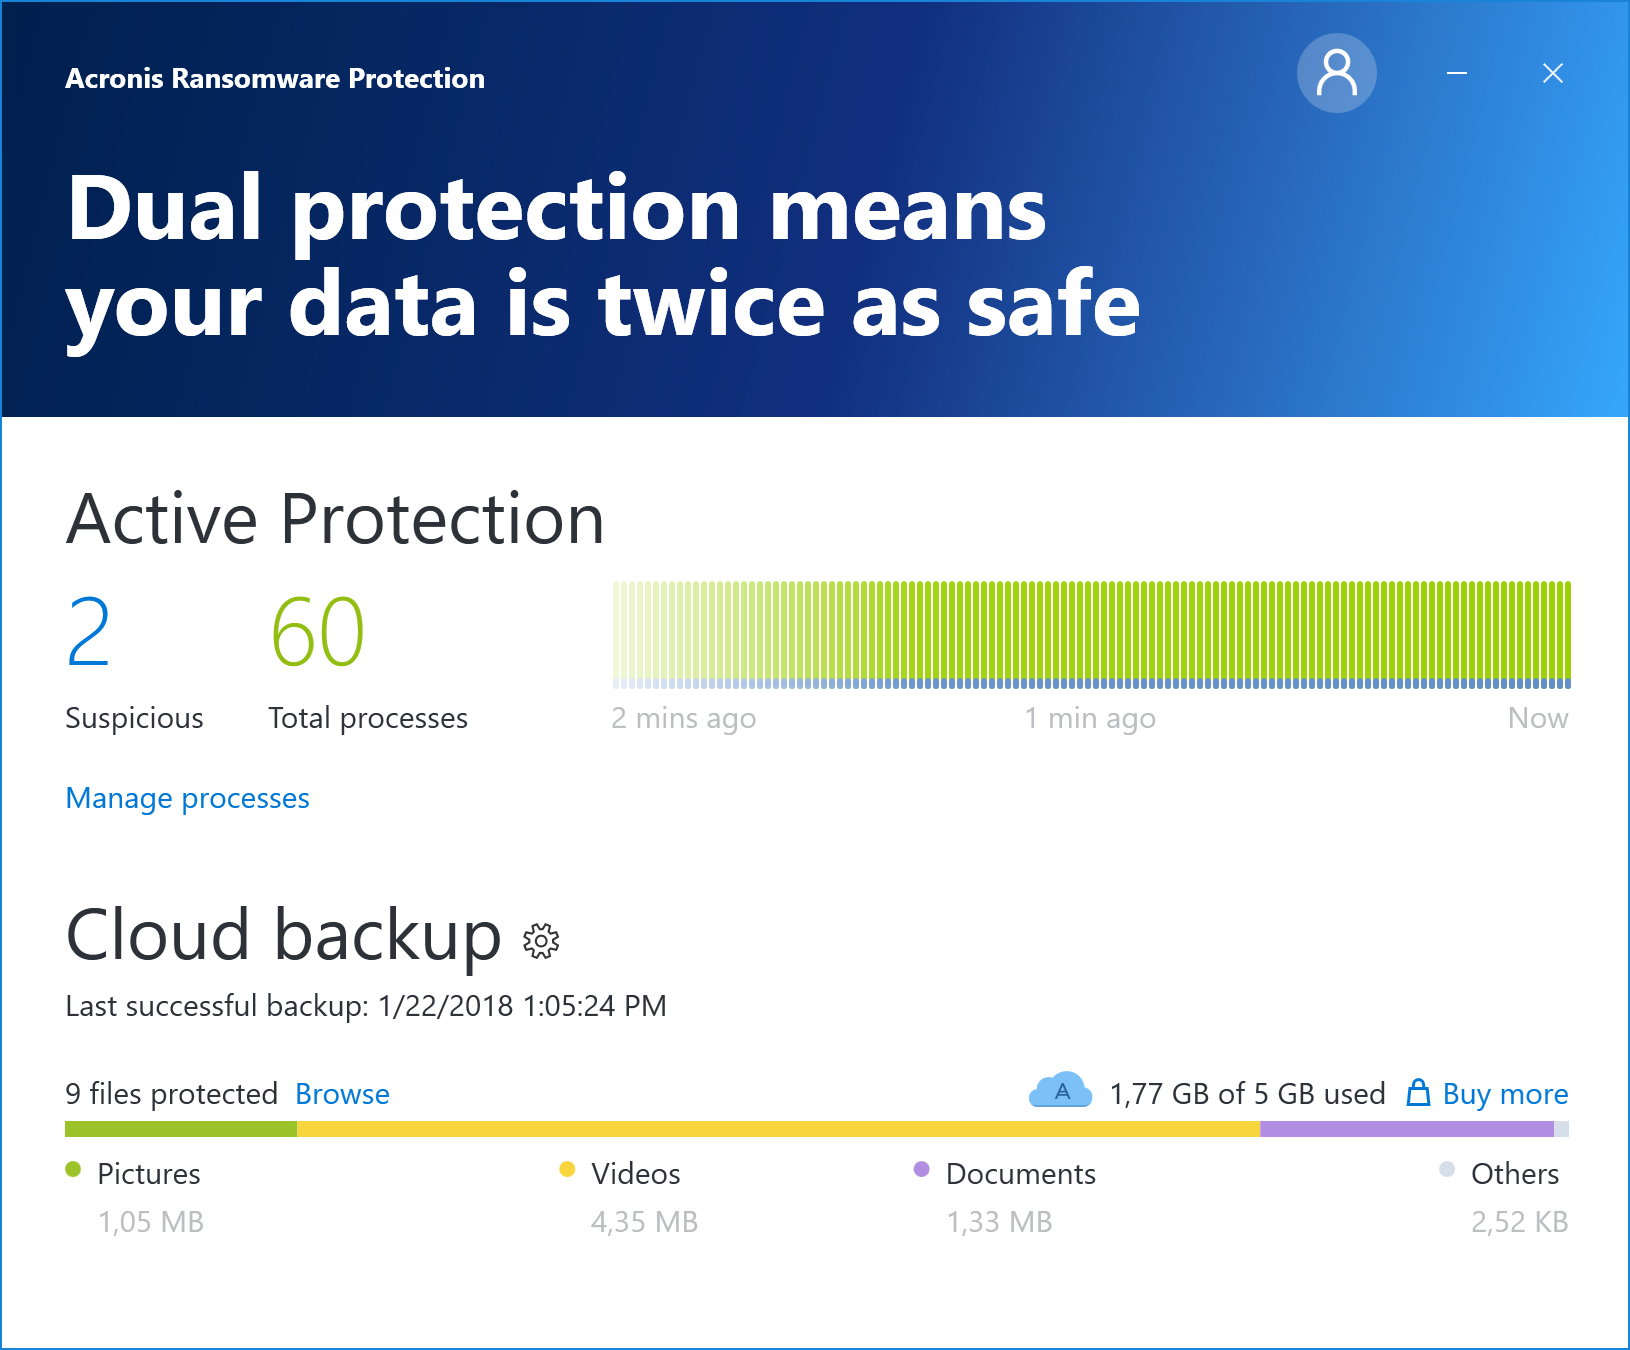 Acronis Ransomware Protection Screen shot